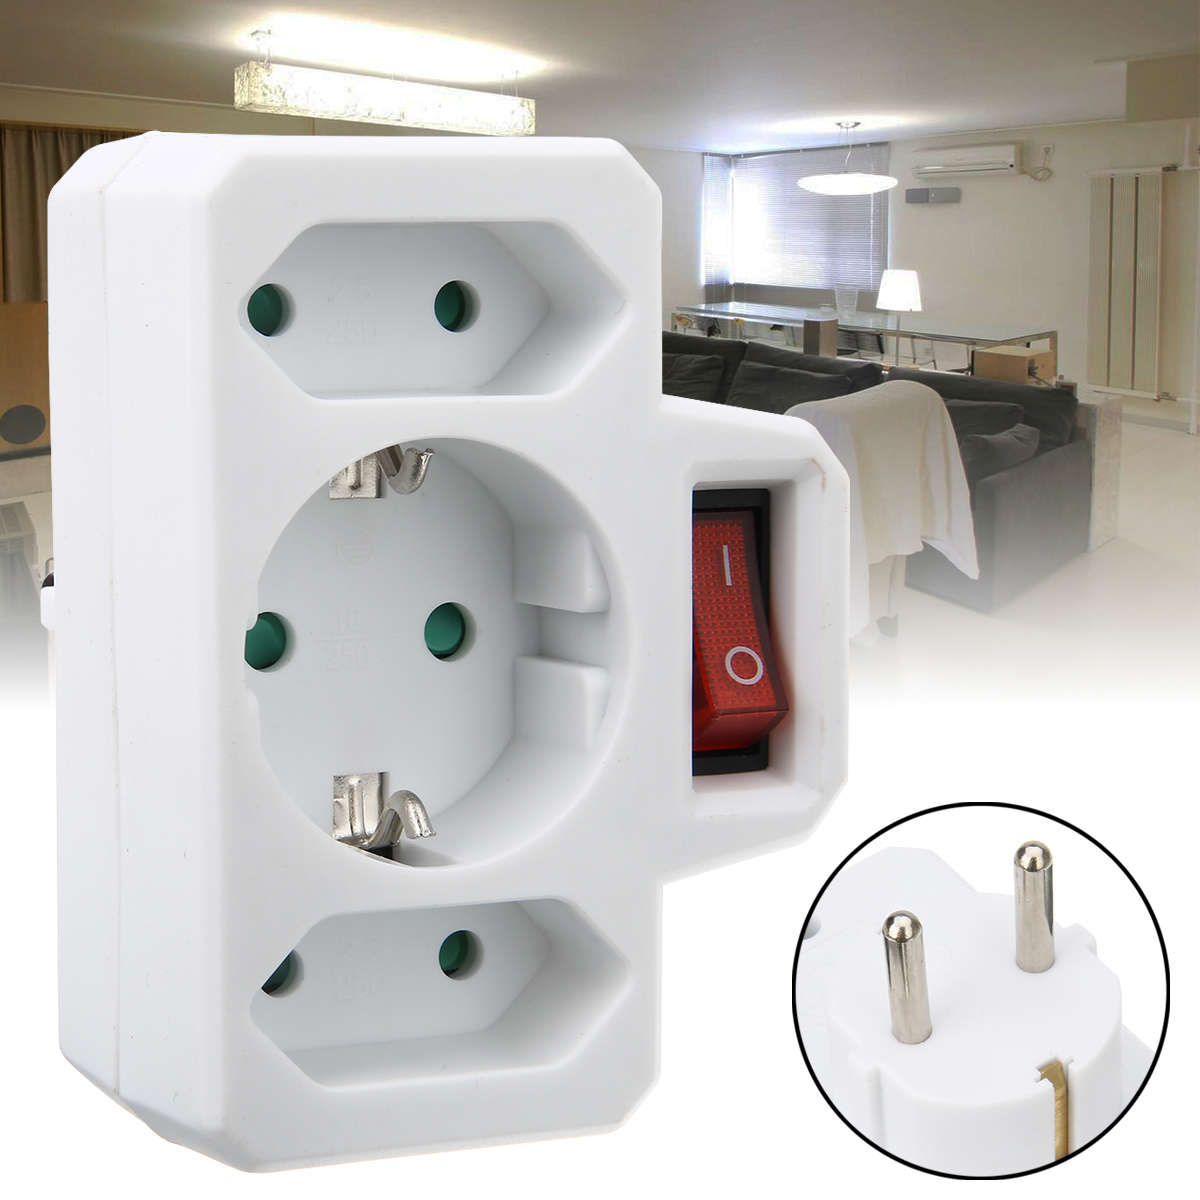 1pc 250V 16A/2.5A EU Plug Multiple Outlet Extension Socket Home Electronics Charging Electric Adapter With Switch